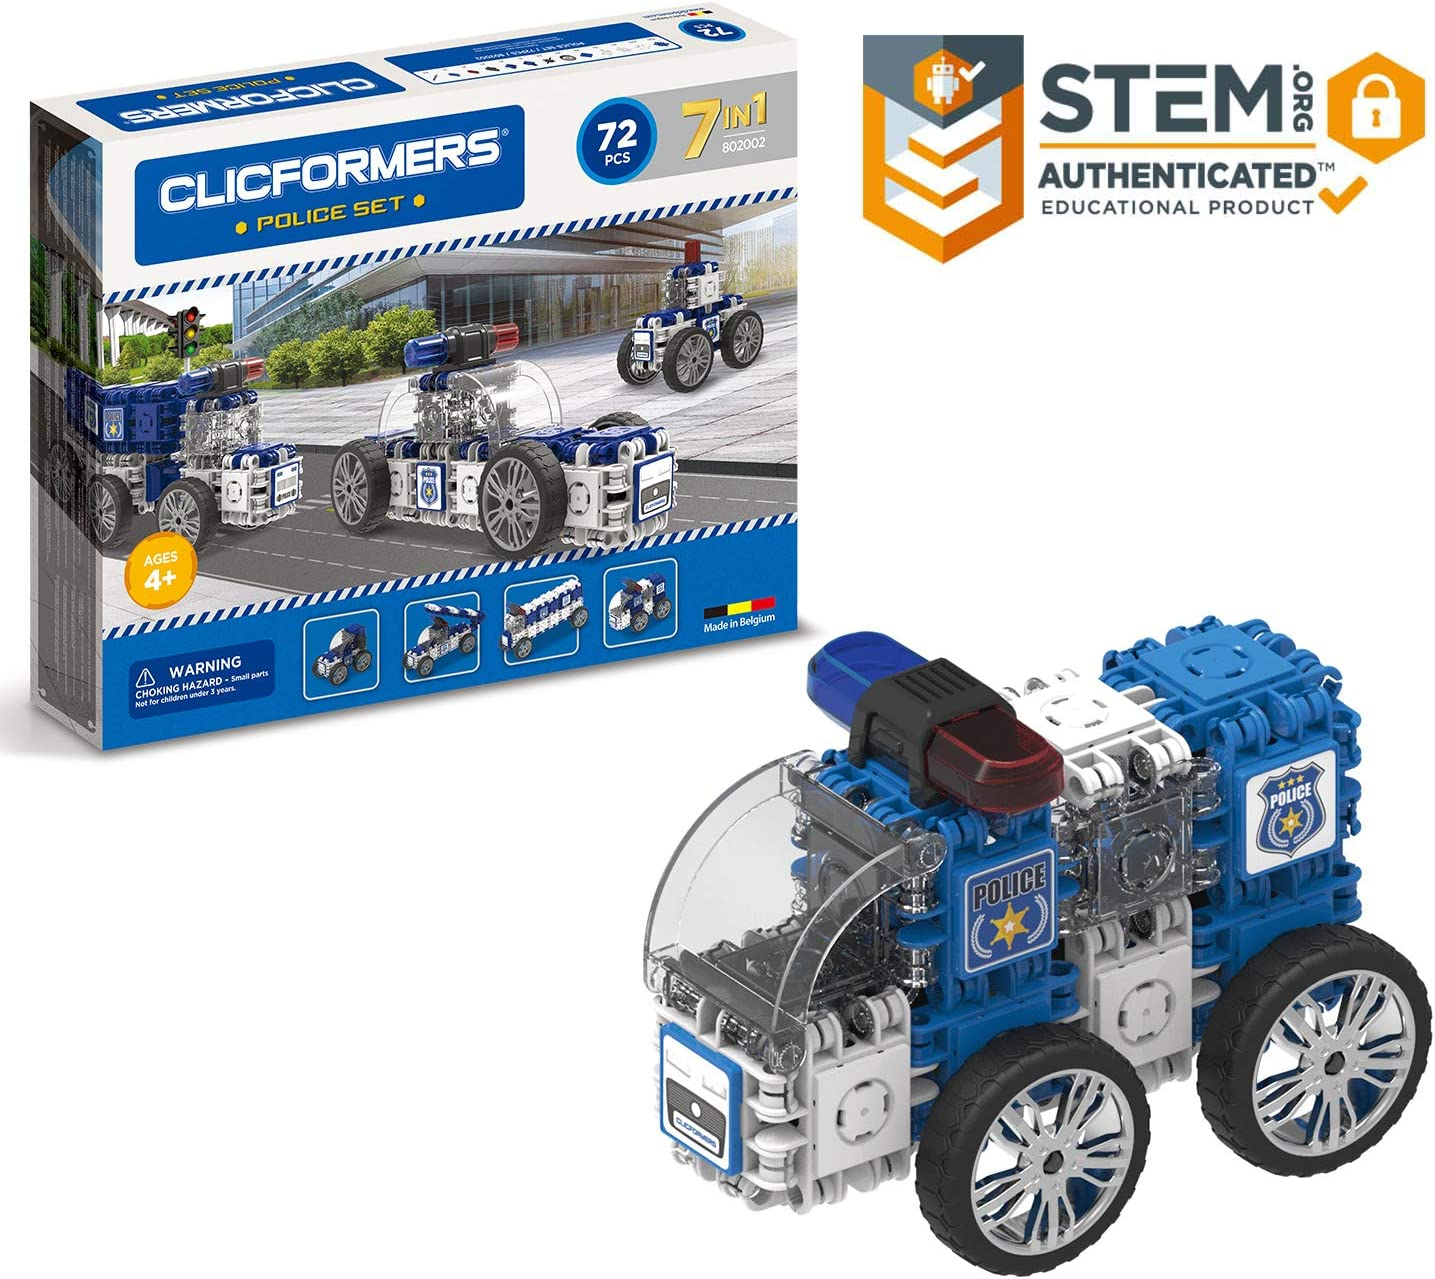 Clicformers Police Set 7 in 1 Vehicles 72 PCS Building and Construction Toy